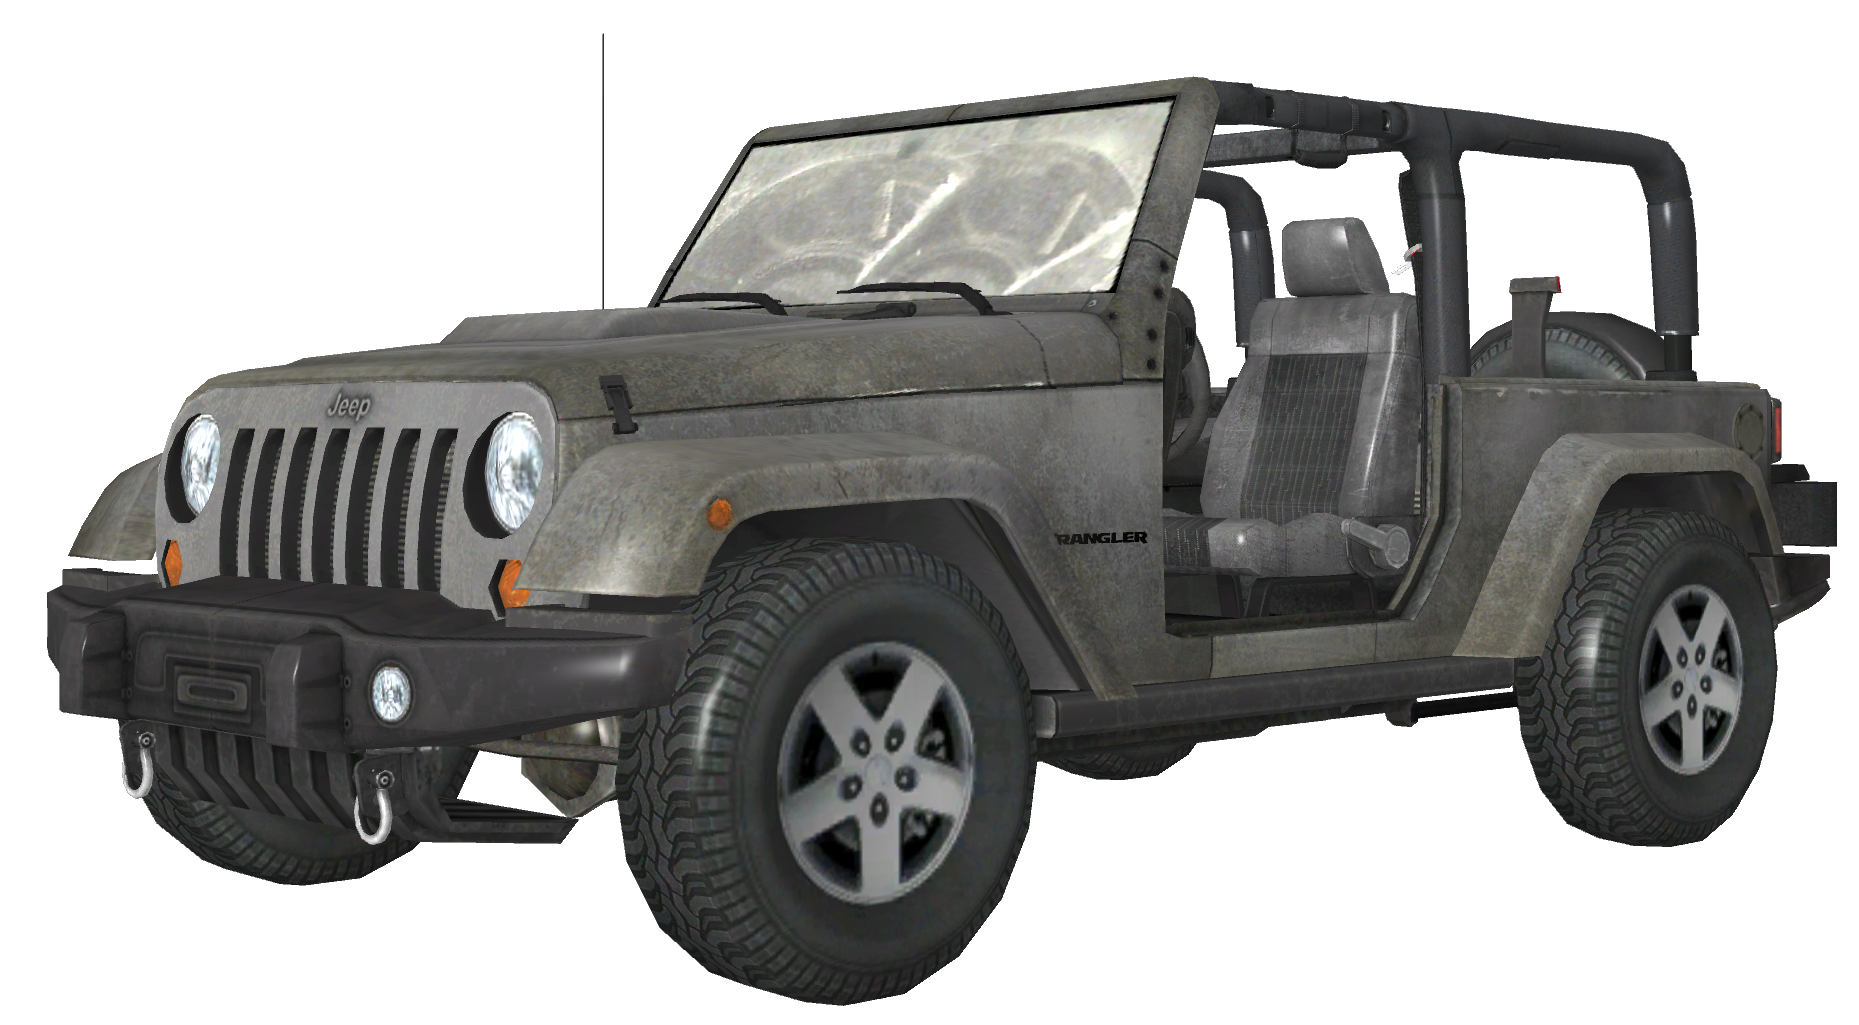 Image wrangler white model. Jeep silouette png vector transparent download